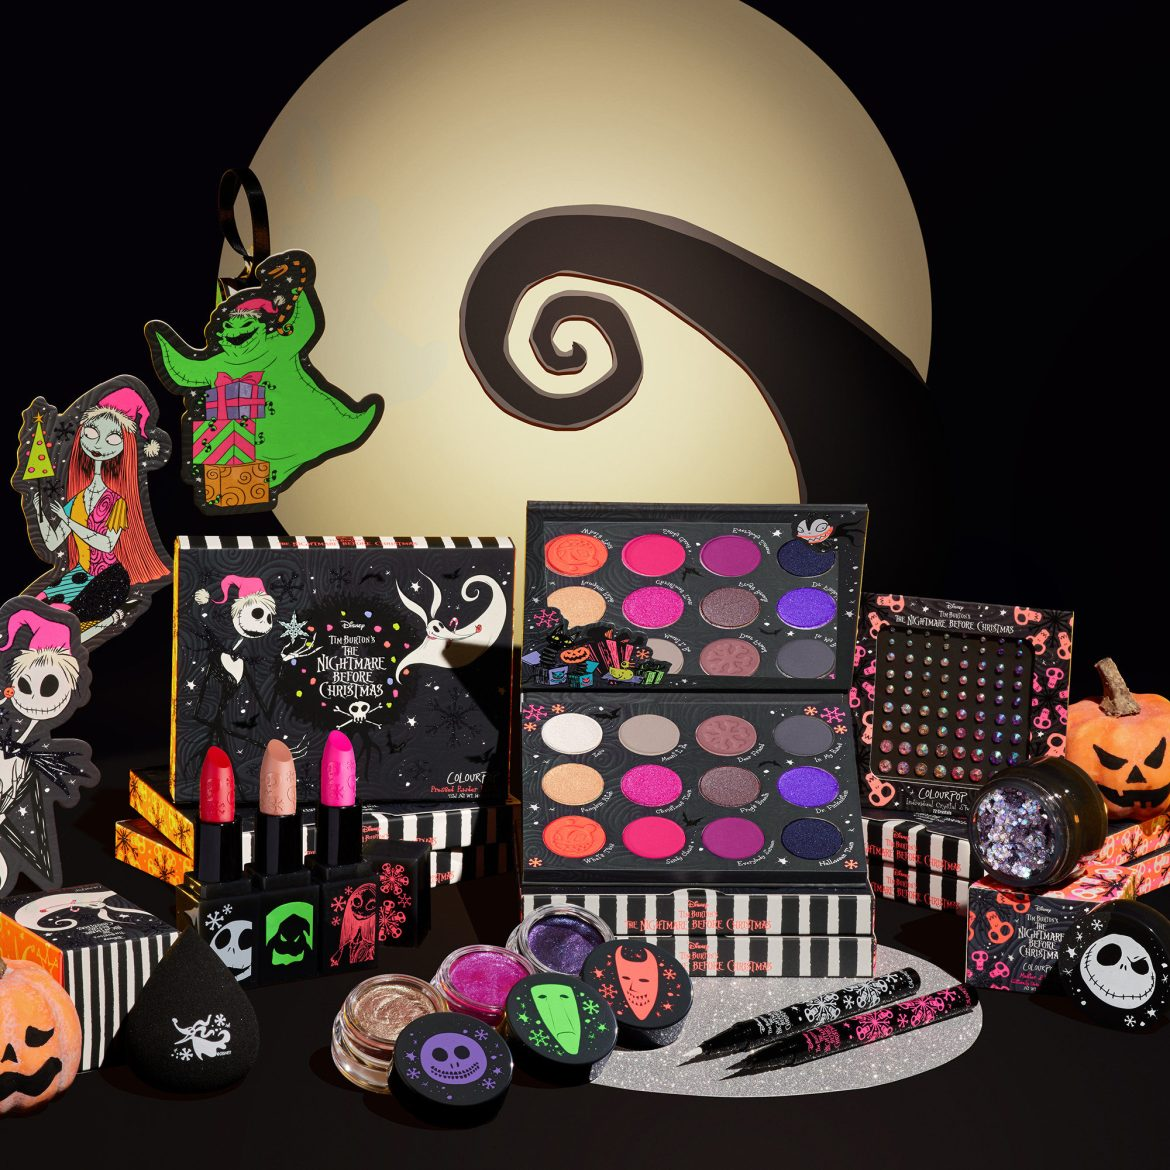 Don't Be Scared A Nightmare Before Christmas ColourPop Collection Is Coming Soon